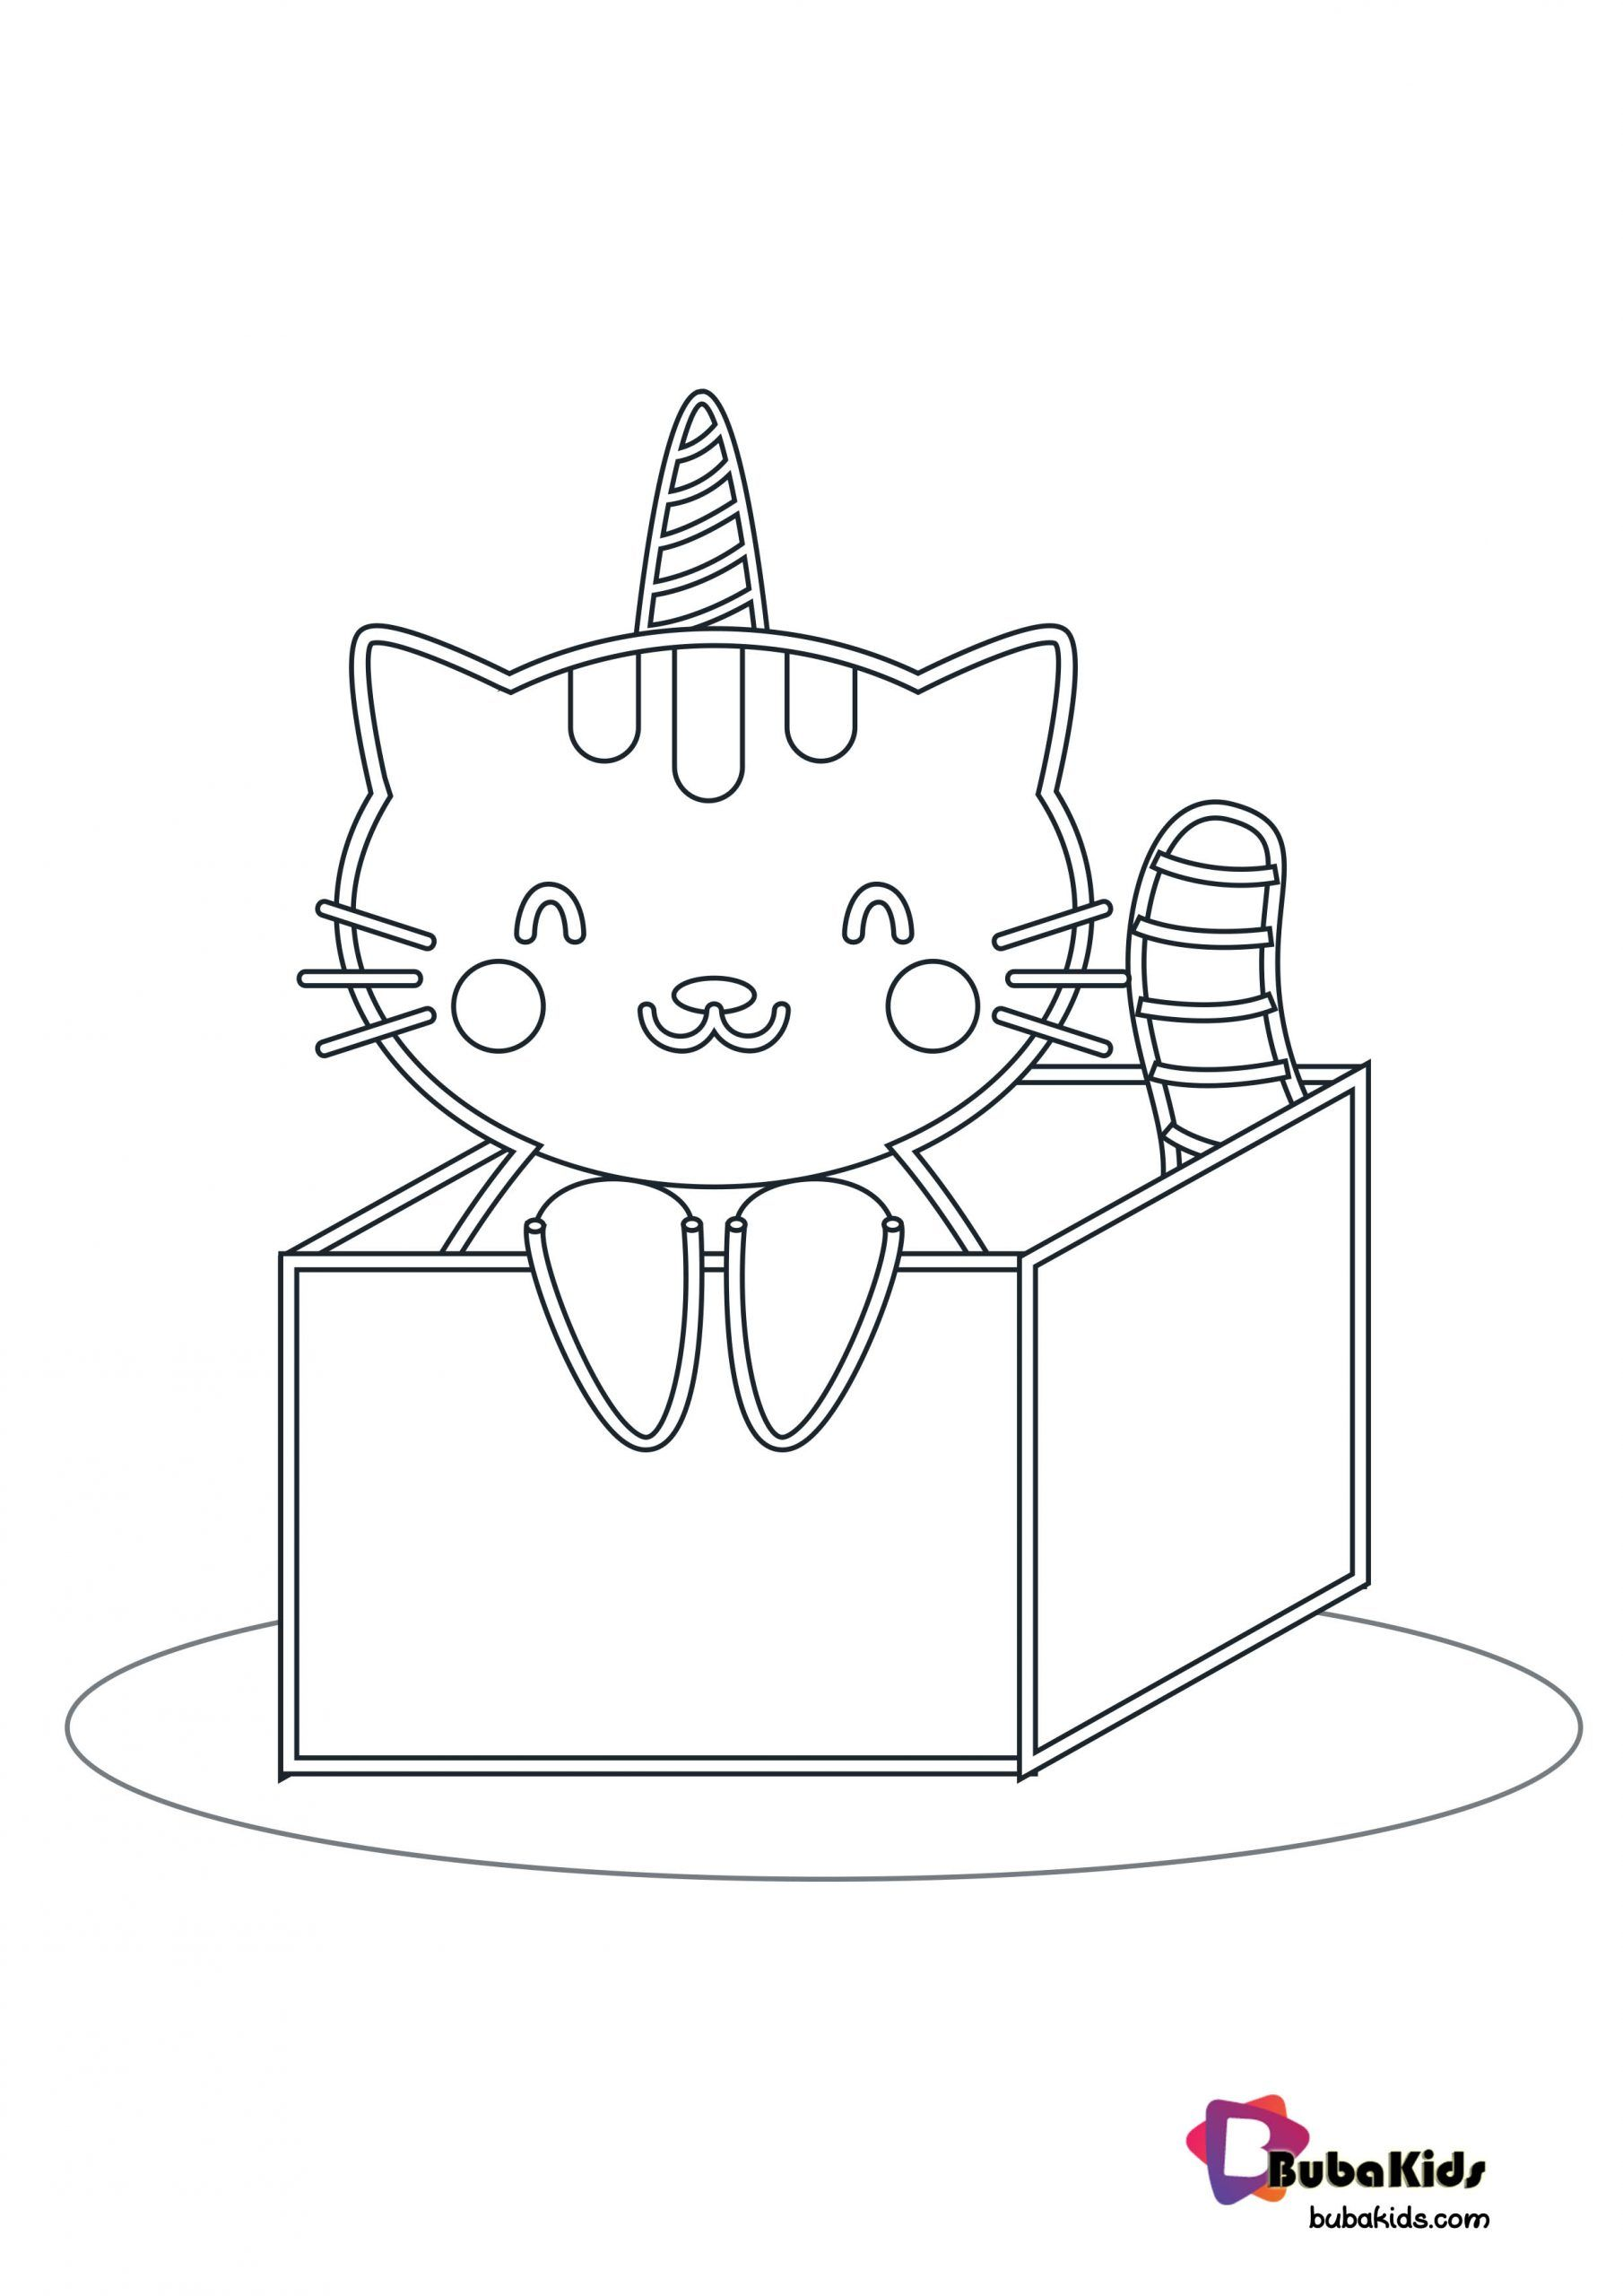 Cat In The Box Coloring Page Collection Of Animal Coloring Pages For Teenage Printable That You C Animal Coloring Pages Coloring Pages Printable Coloring Book